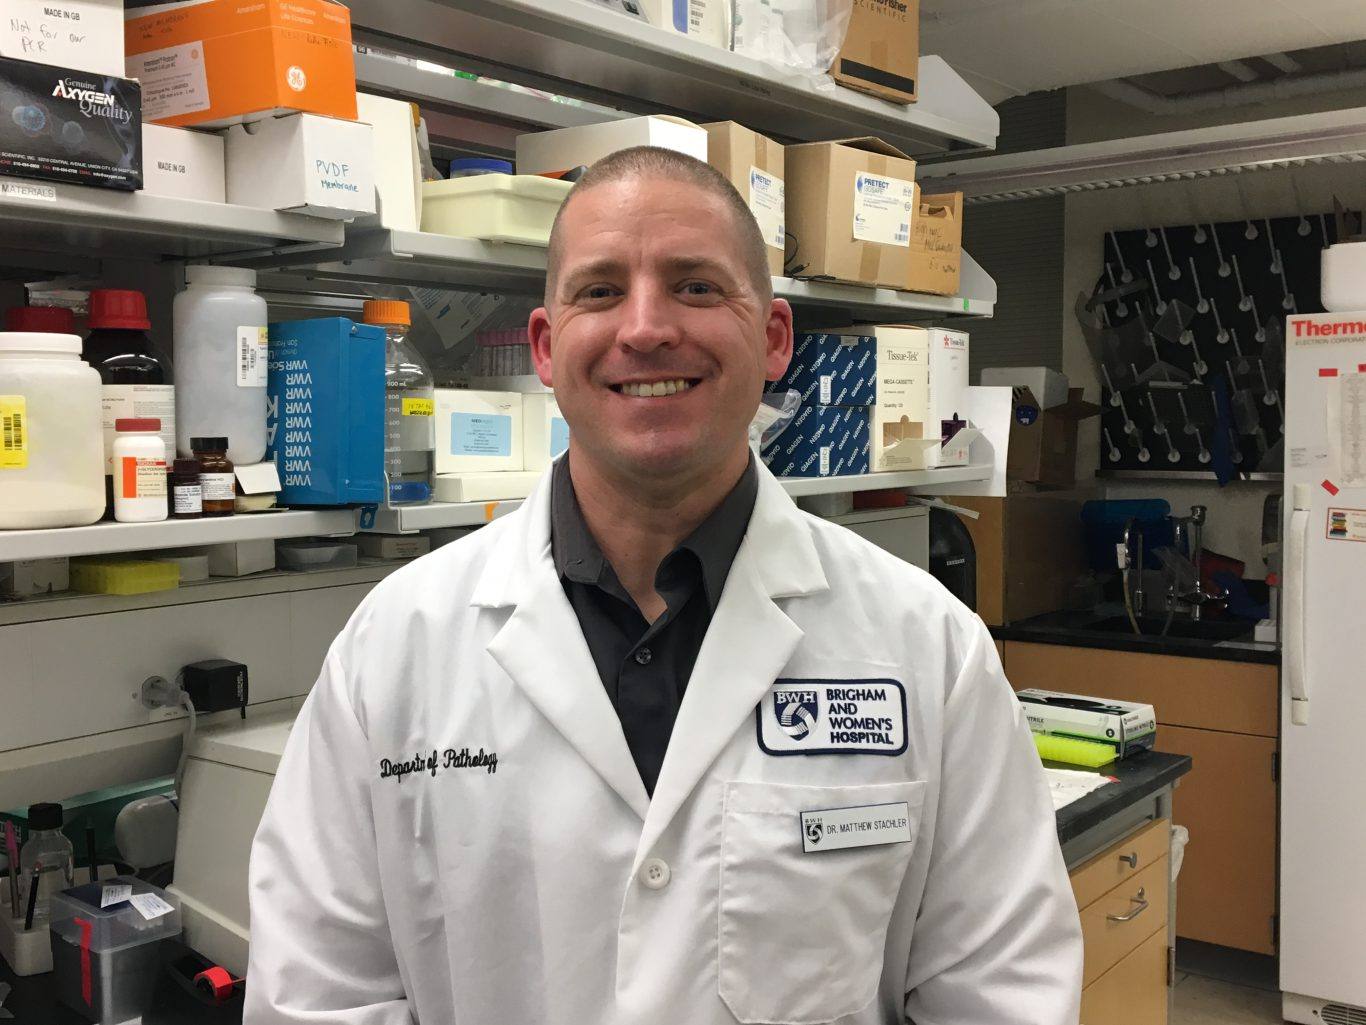 Working to prevent esophageal cancer